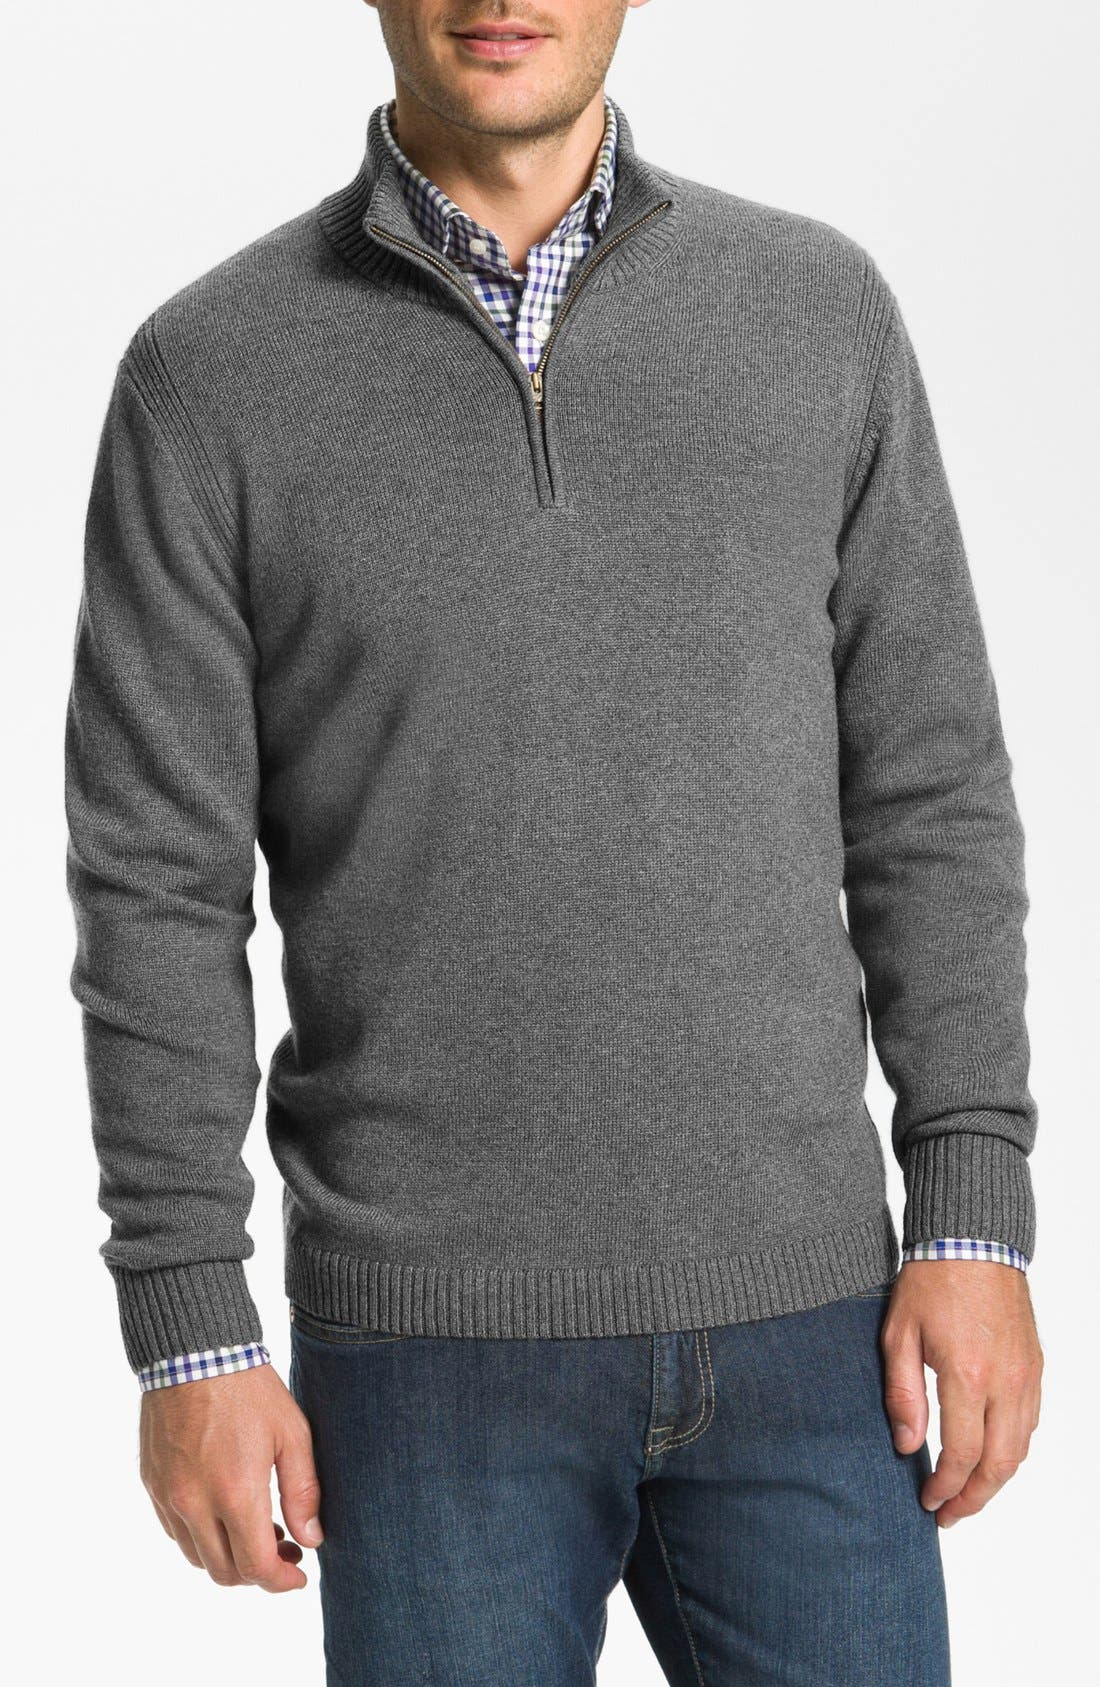 Alternate Image 1 Selected - Façonnable Half Zip Classique Fit Merino Wool Sweater